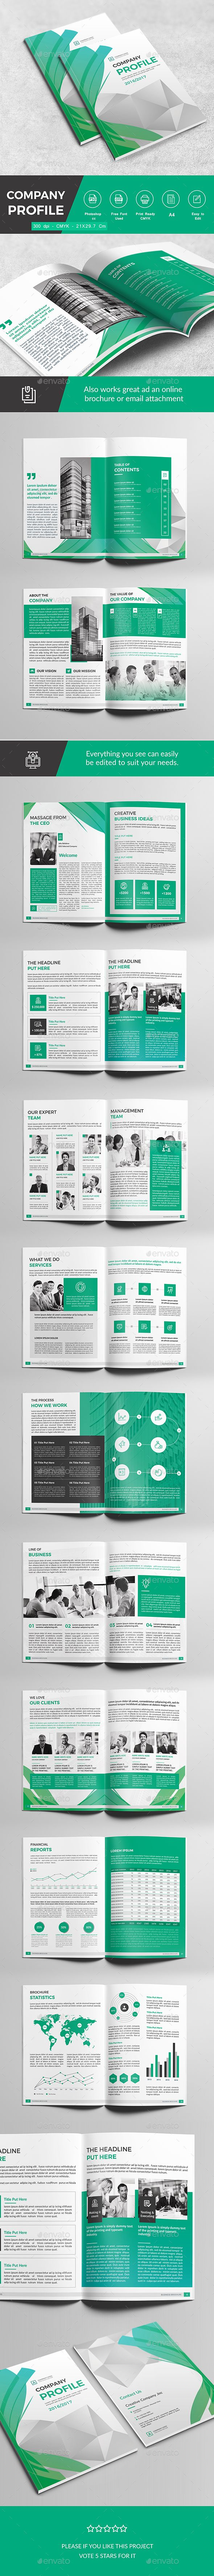 Company Profile — Photoshop PSD #modern #agency • Download ➝ https://graphicriver.net/item/company-profile/19194527?ref=pxcr